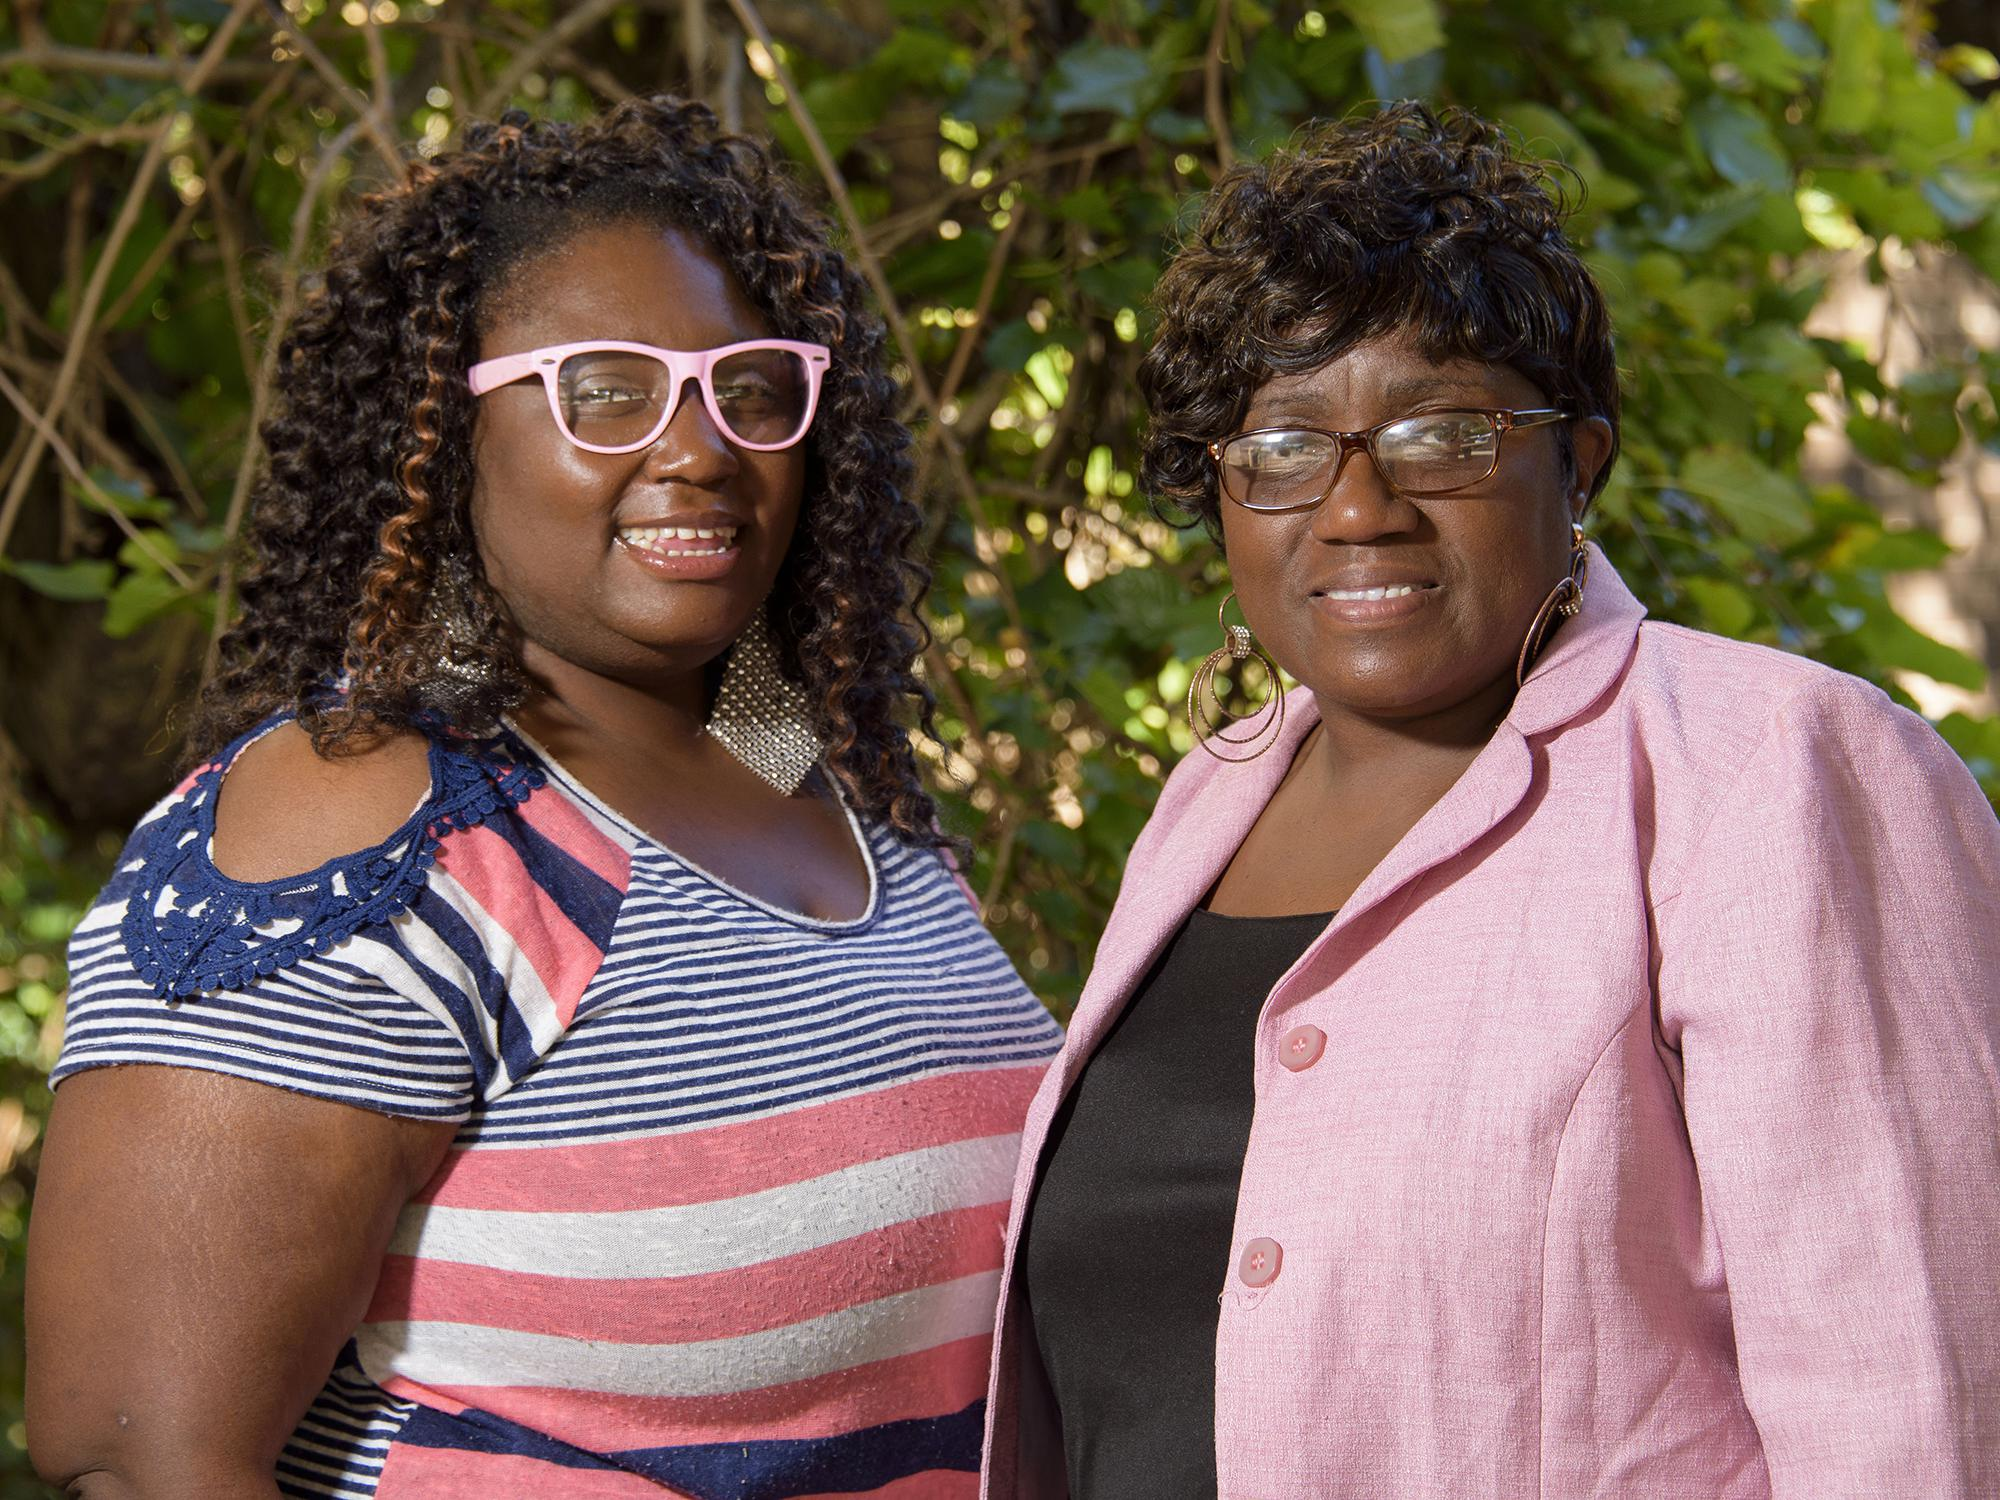 Jameka Coffey Harkins, left, and her mother, Rose Coffey-Graham, represent two generations leading an Oktibbeha County 4-H Club. Adult volunteers are keys to the youth develop program's success. (Photo by MSU Extension Service/Kevin Hudson)